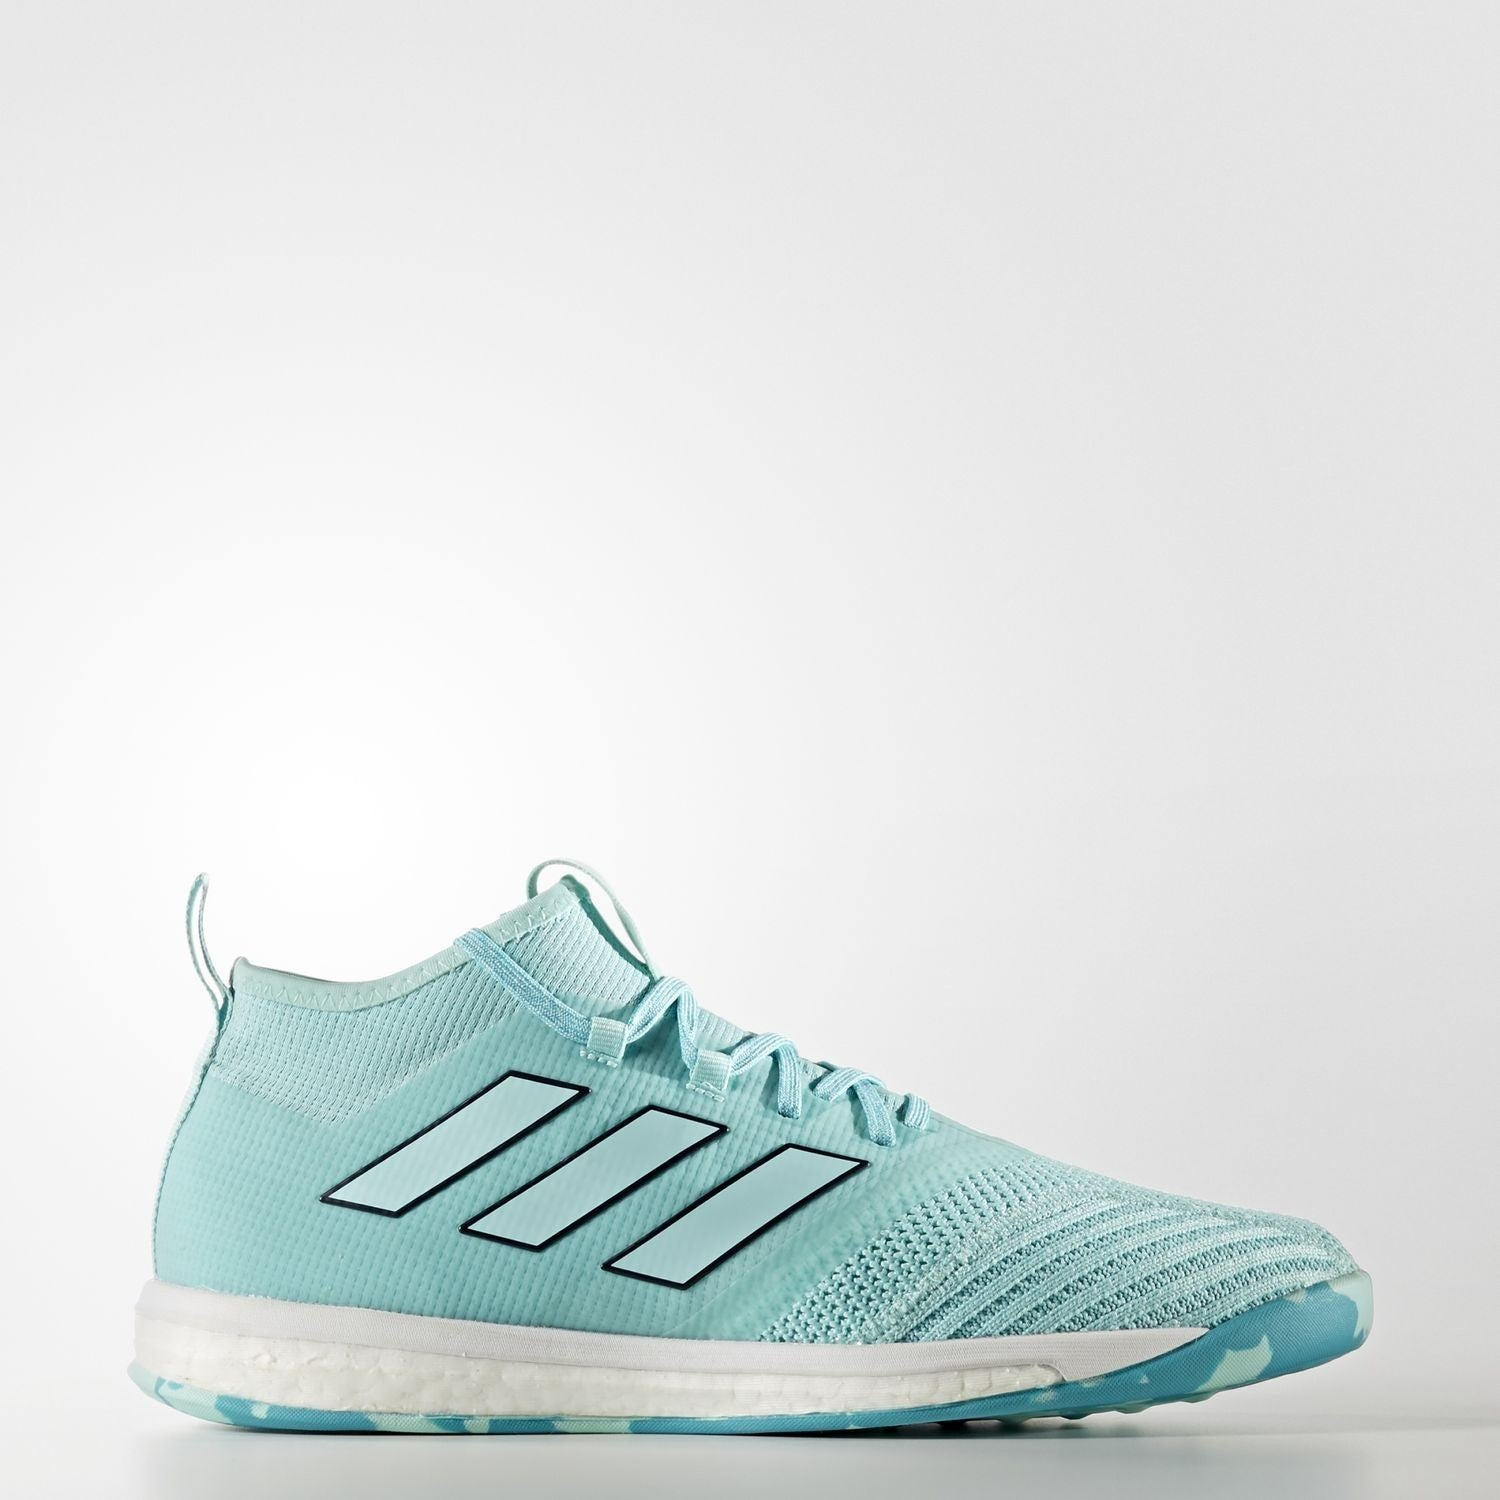 Men's ACE Tango 17.1 Trainers - Energy Aqua Indoor